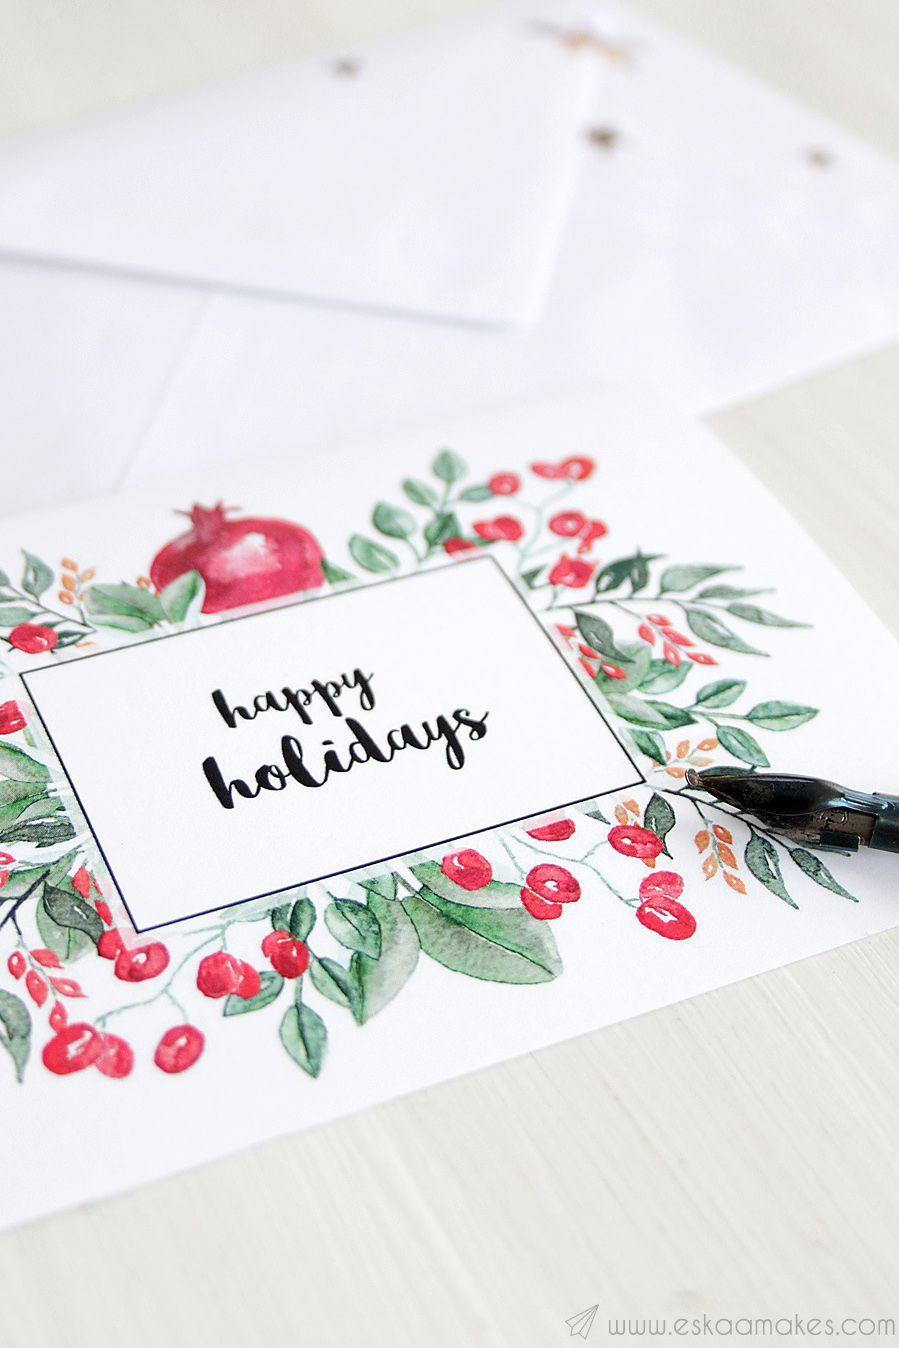 """<p>Save money—and time!—by using this blogger's free printable to make your very own set of elegant Yuletide cards. </p><p><strong>Get the tutorial at <a href=""""https://www.eskaamakes.com/free-printable-christmas-cards/"""" rel=""""nofollow noopener"""" target=""""_blank"""" data-ylk=""""slk:Eskaa Makes"""" class=""""link rapid-noclick-resp"""">Eskaa Makes</a>.</strong></p><p><strong><a class=""""link rapid-noclick-resp"""" href=""""https://www.amazon.com/LIVINGO-Multi-Purpose-Stainless-Dressmaking-Professional/dp/B079L16LN6/?tag=syn-yahoo-20&ascsubtag=%5Bartid%7C10050.g.3872%5Bsrc%7Cyahoo-us"""" rel=""""nofollow noopener"""" target=""""_blank"""" data-ylk=""""slk:SHOP ENVELOPES"""">SHOP ENVELOPES</a><br></strong></p>"""